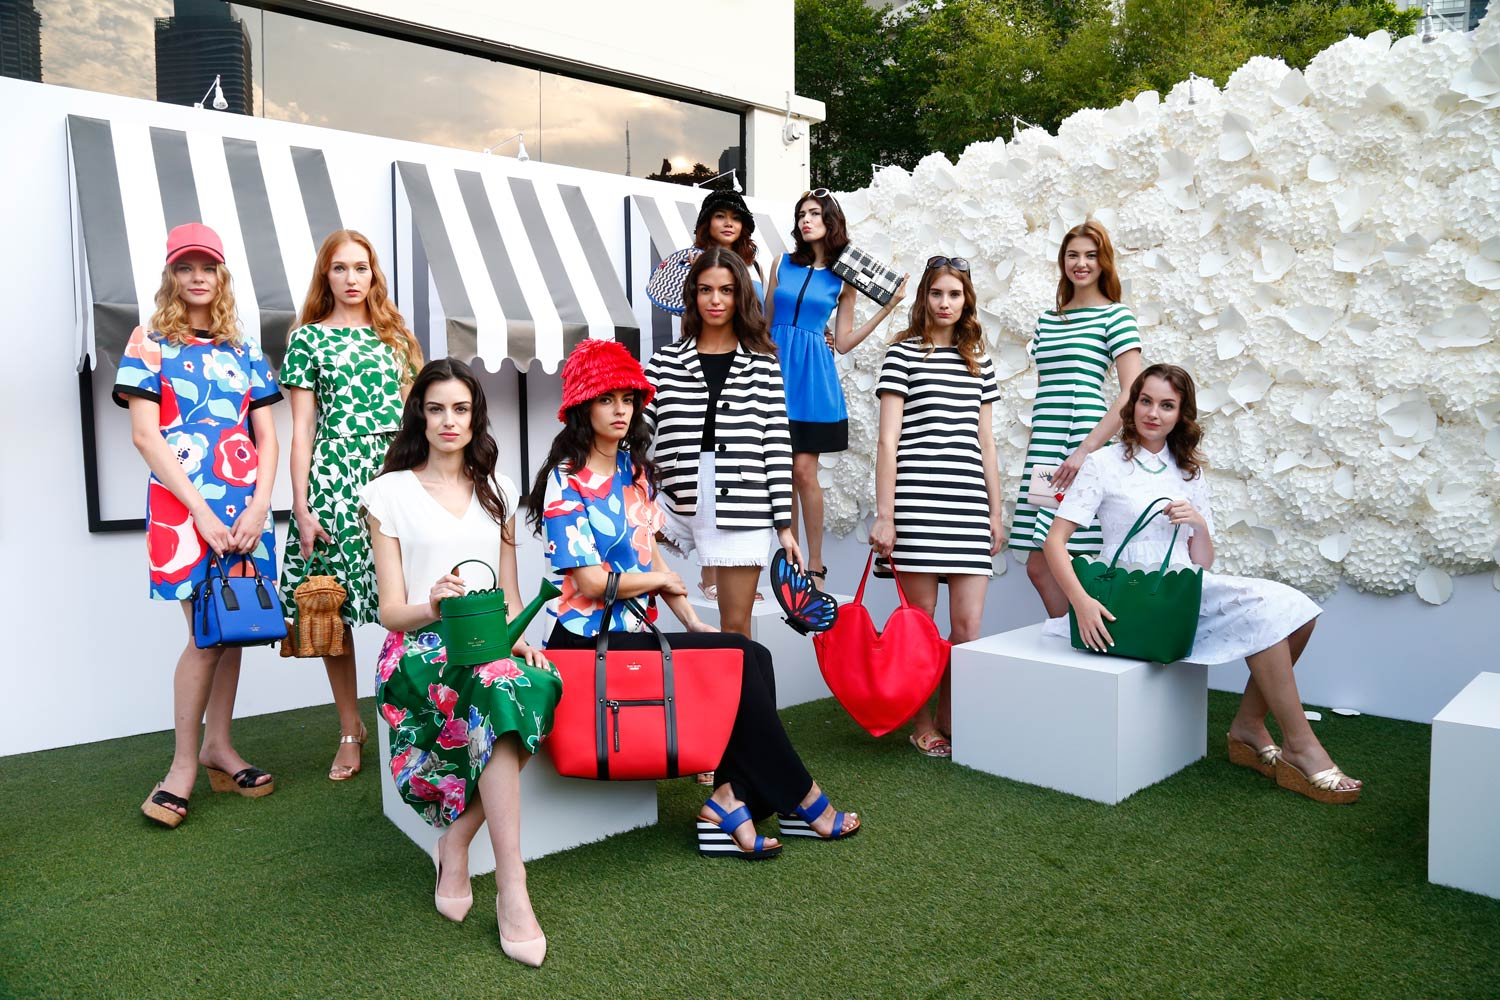 Kate Spade unveil their Spring 2015 collection in Kuala Lumpur, Malaysia